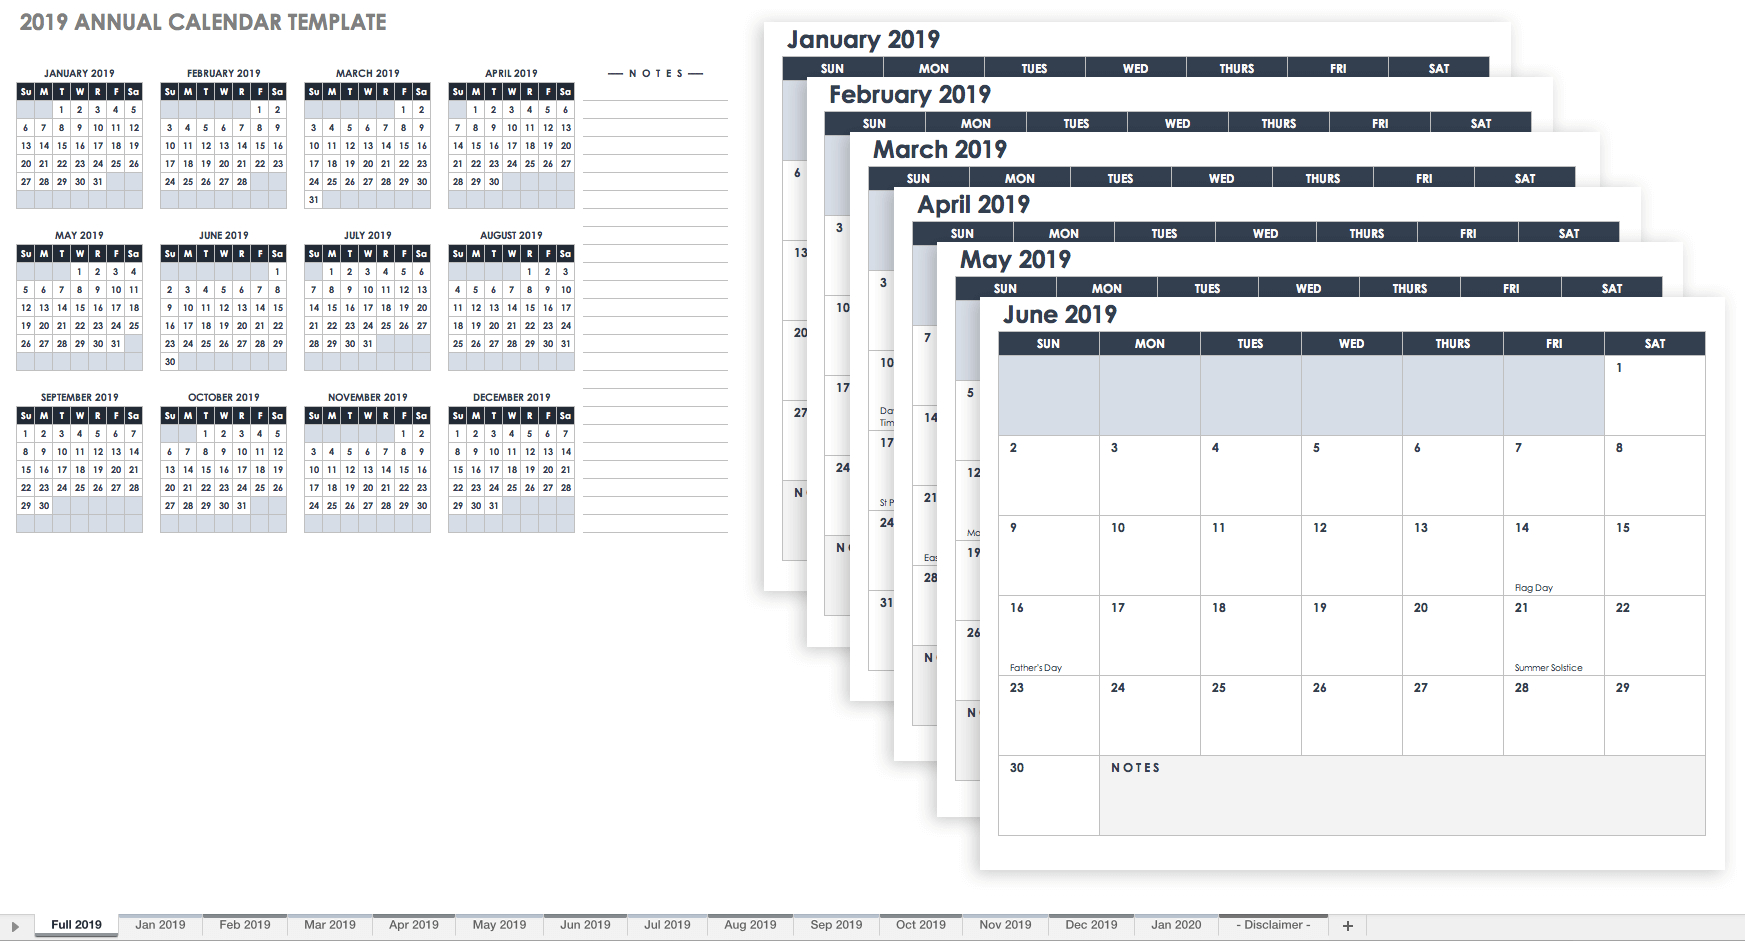 15 Free Monthly Calendar Templates | Smartsheet with 2019/2020 Calander To Write On